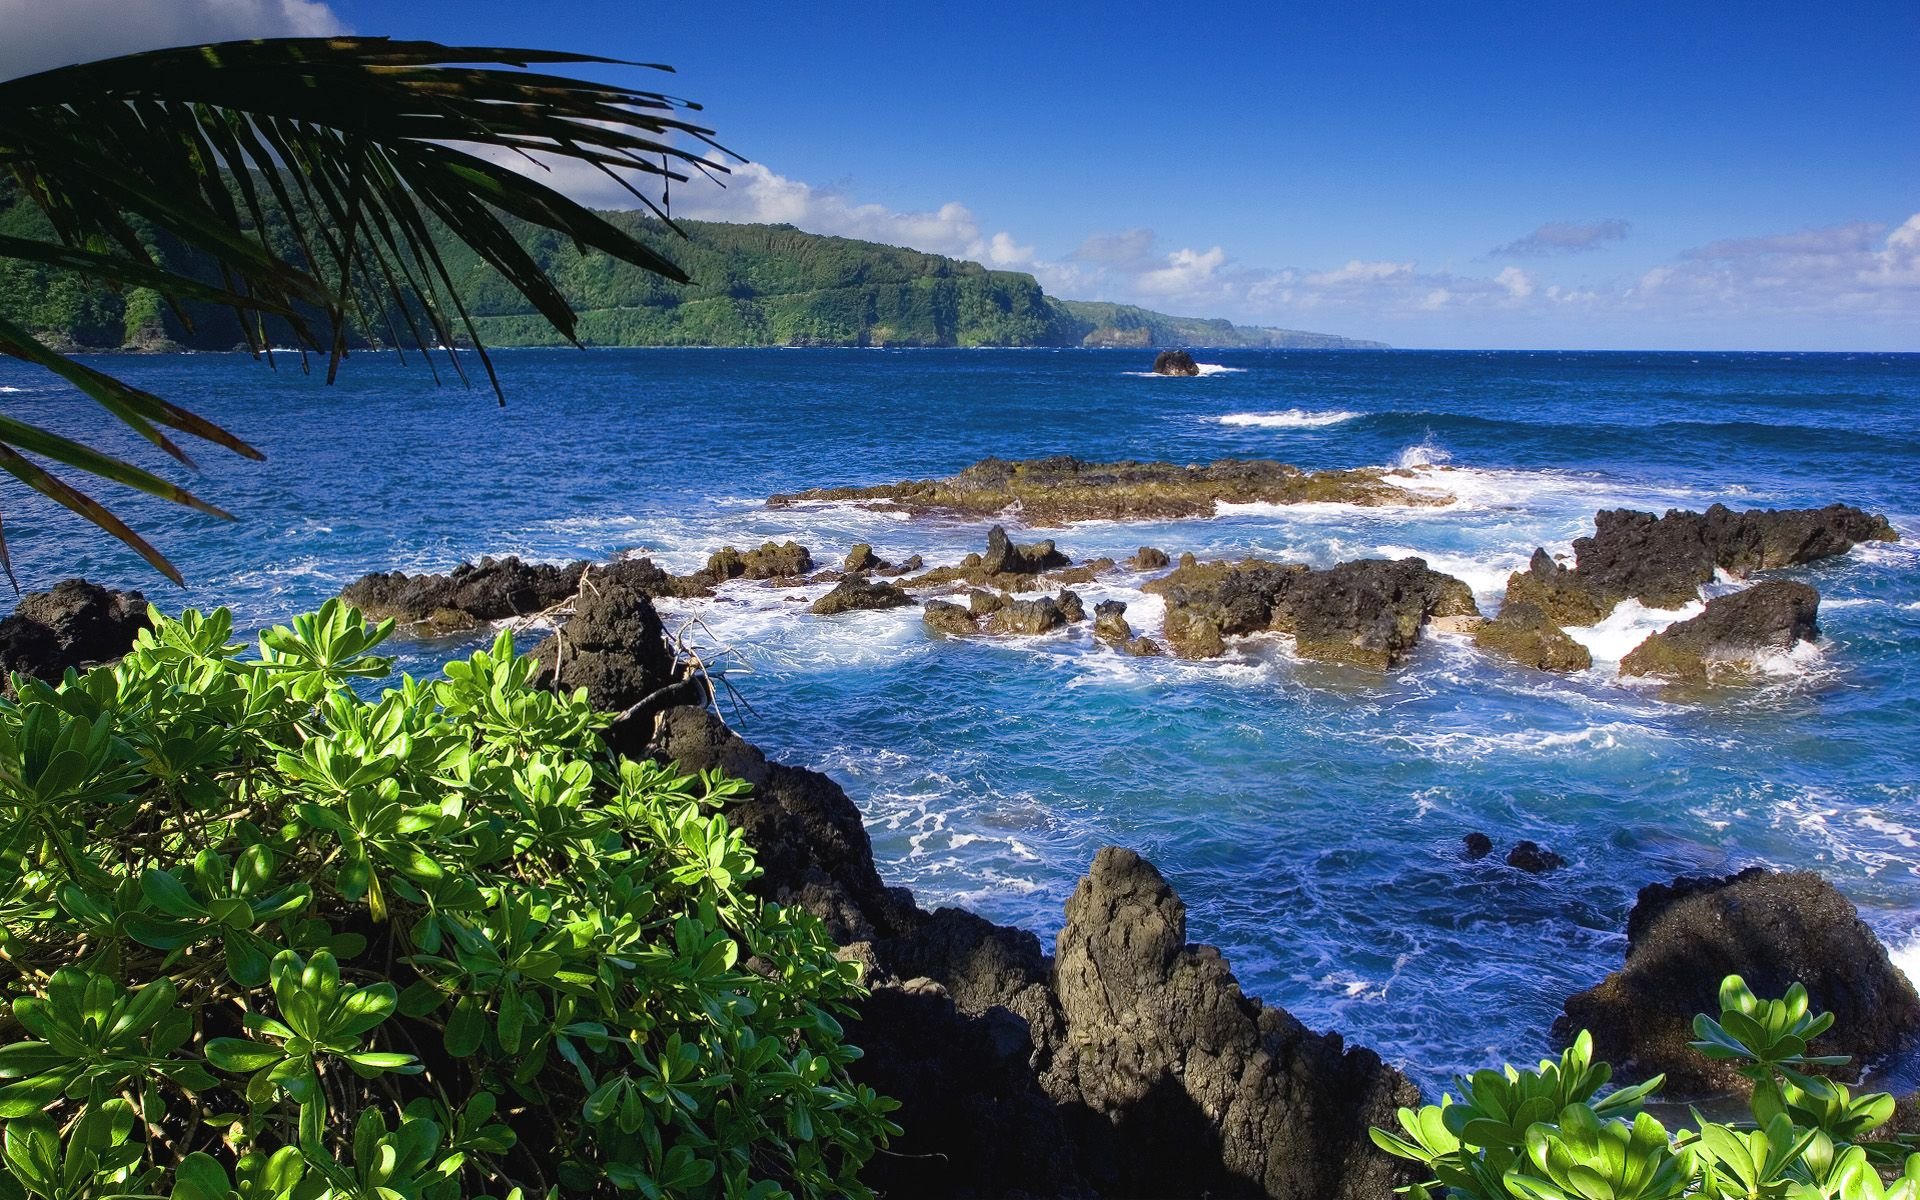 Wallpaper Wallpaper Beaches Windows Pixel Blue Wallpapers Large 815335 Beautiful Places Scenic Dream Vacations